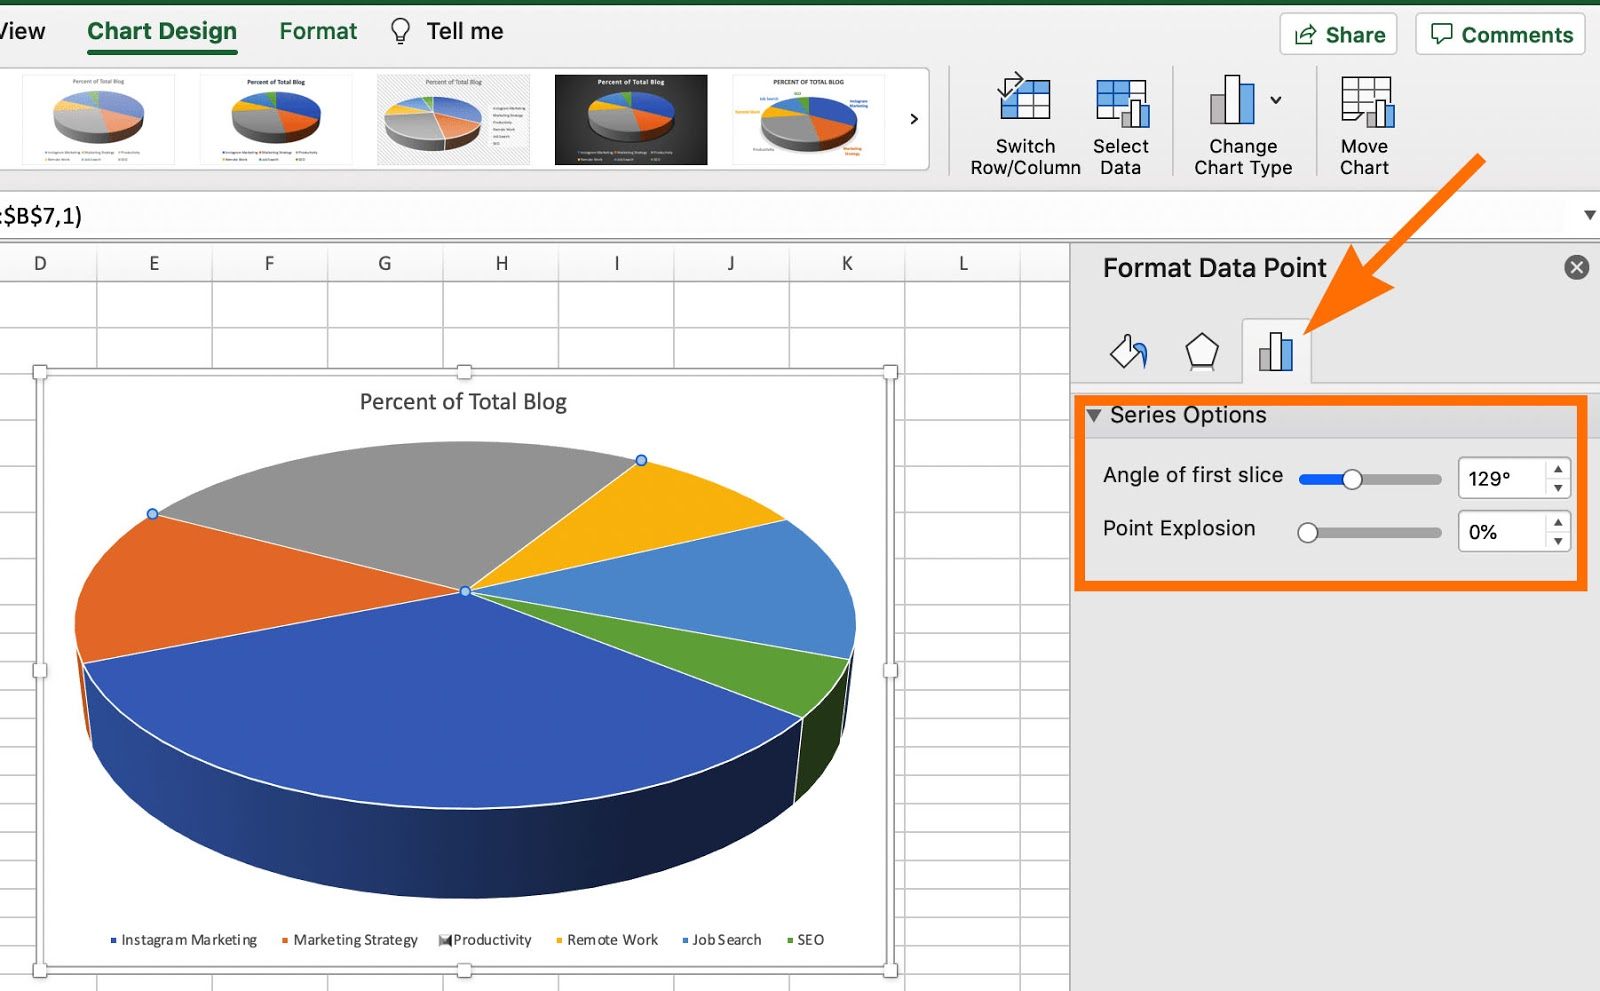 How to rotate a pie chart in excel using format data point.